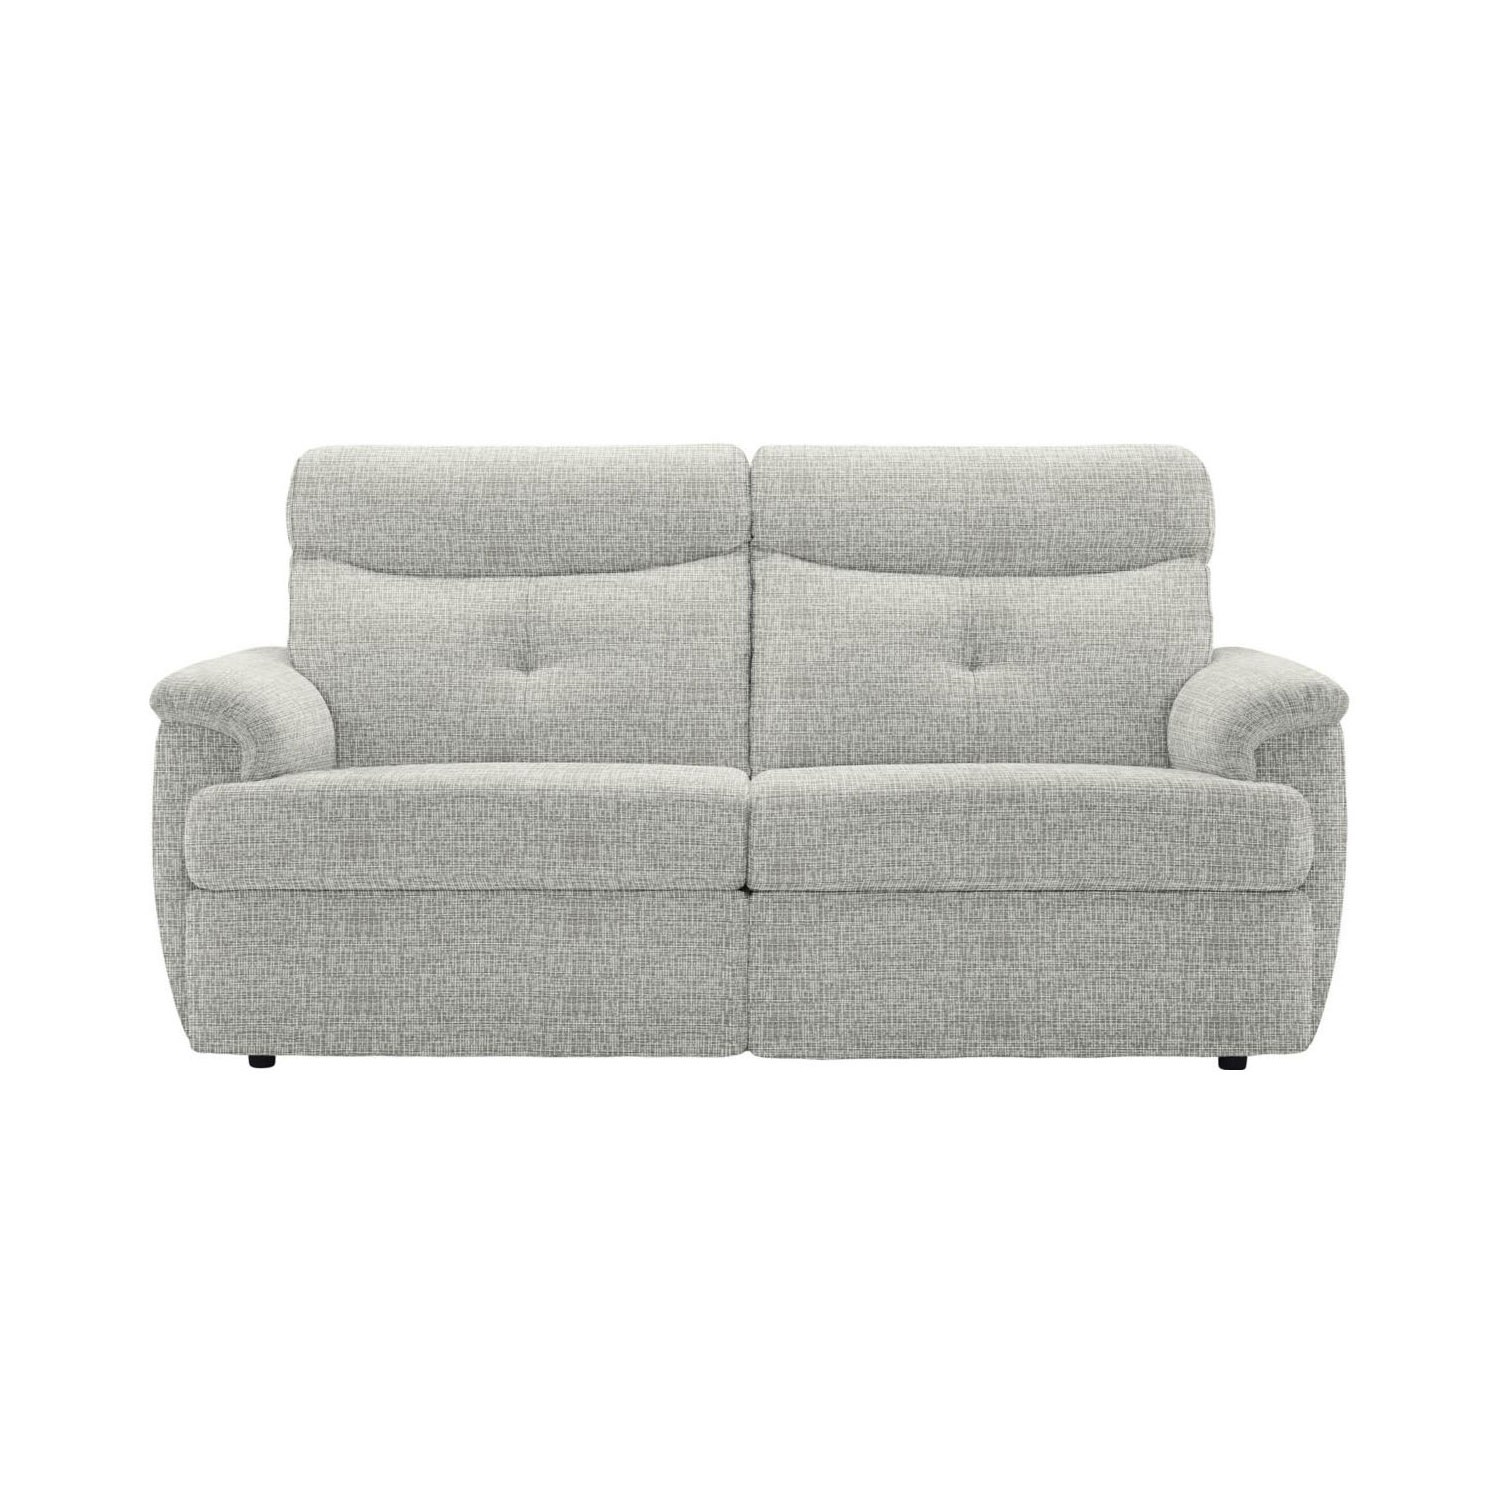 g plan sofa 66 sofar denver atlanta 2 seater leekes